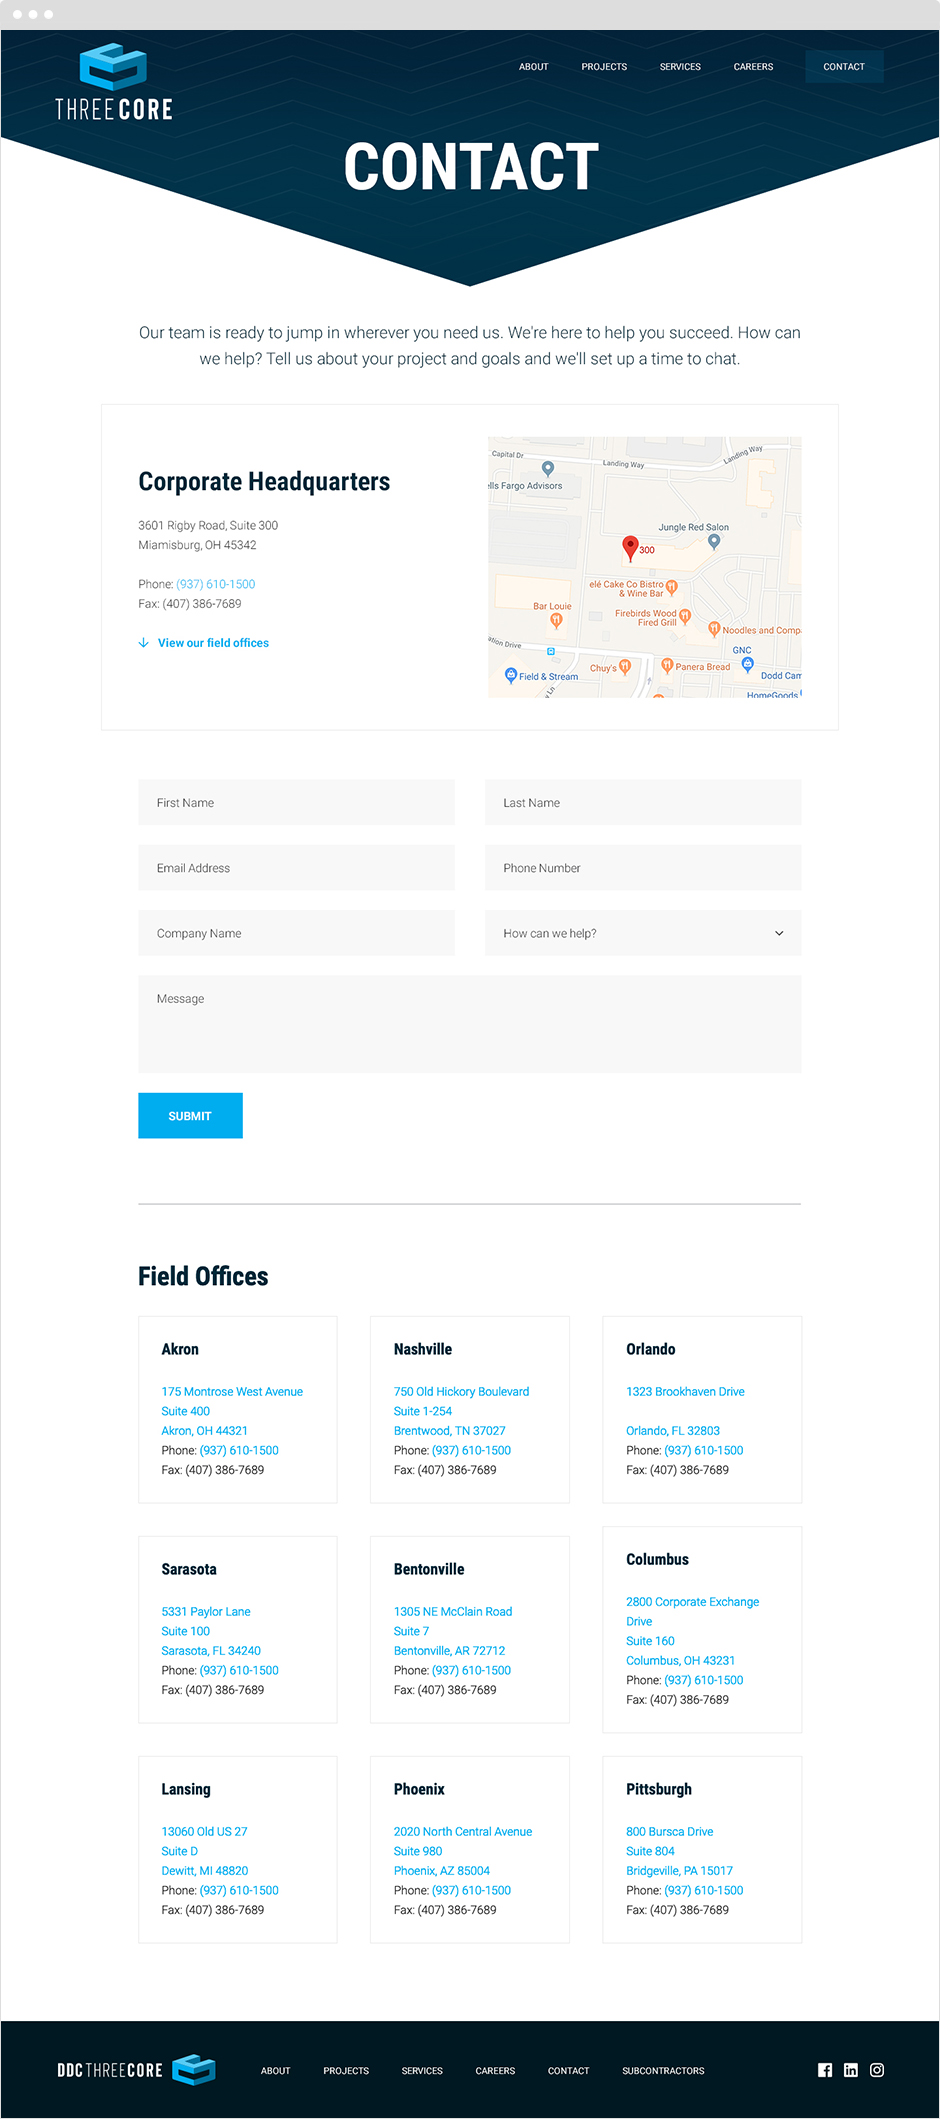 Threecore Contact Page Design